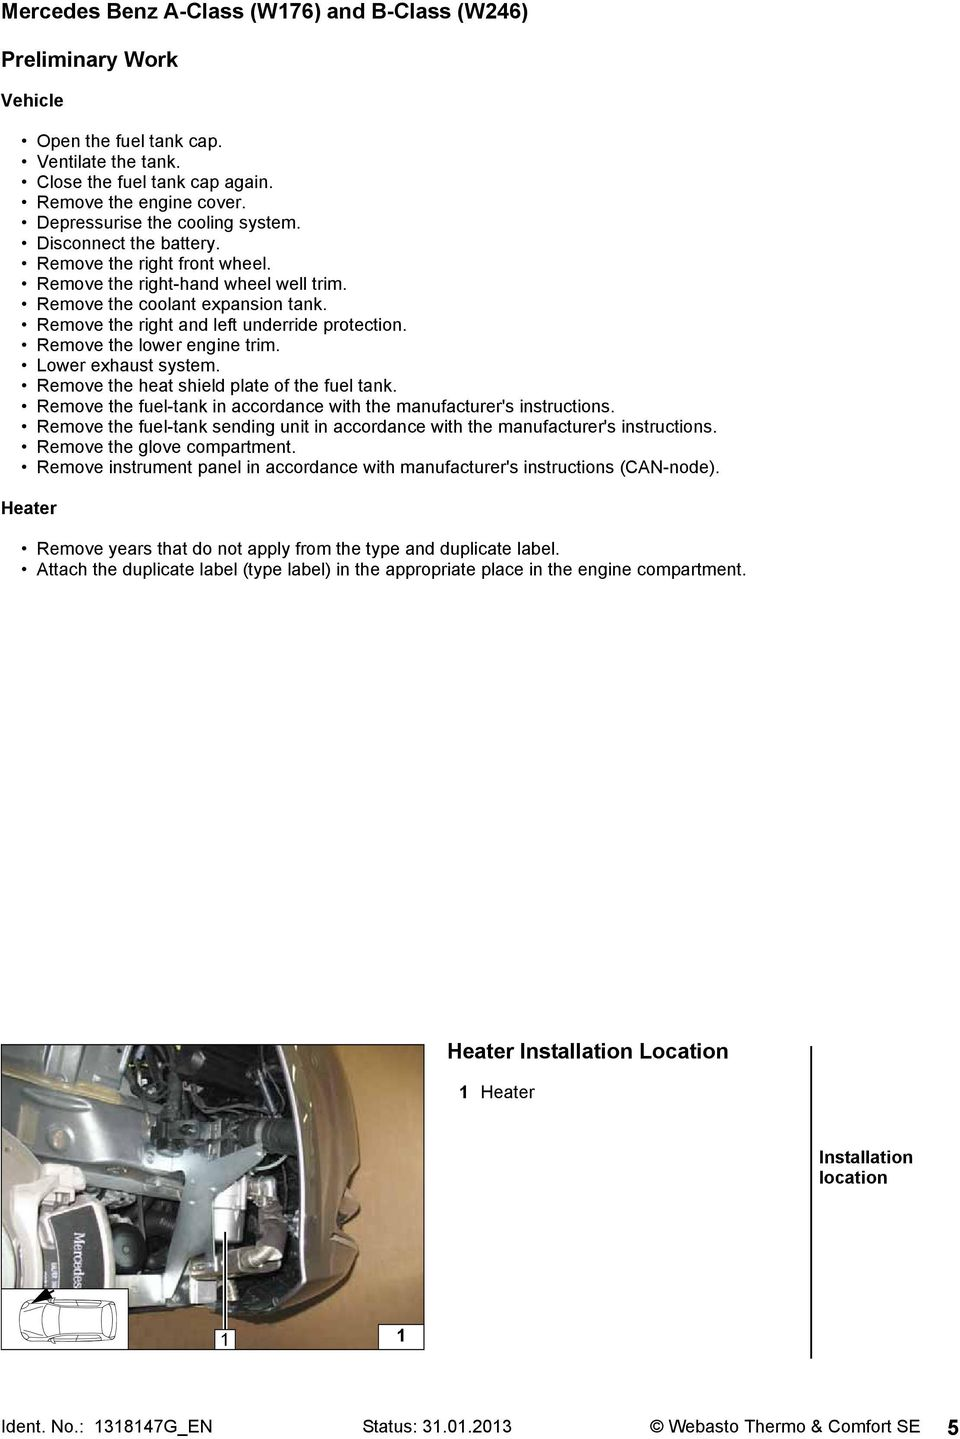 Installation Documentation Mercedes Benz A Class W176 And B Mini Cooper Home Link Mirror Wiring Diagram Remove The Right Left Underride Protection Lower Engine Trim Exhaust